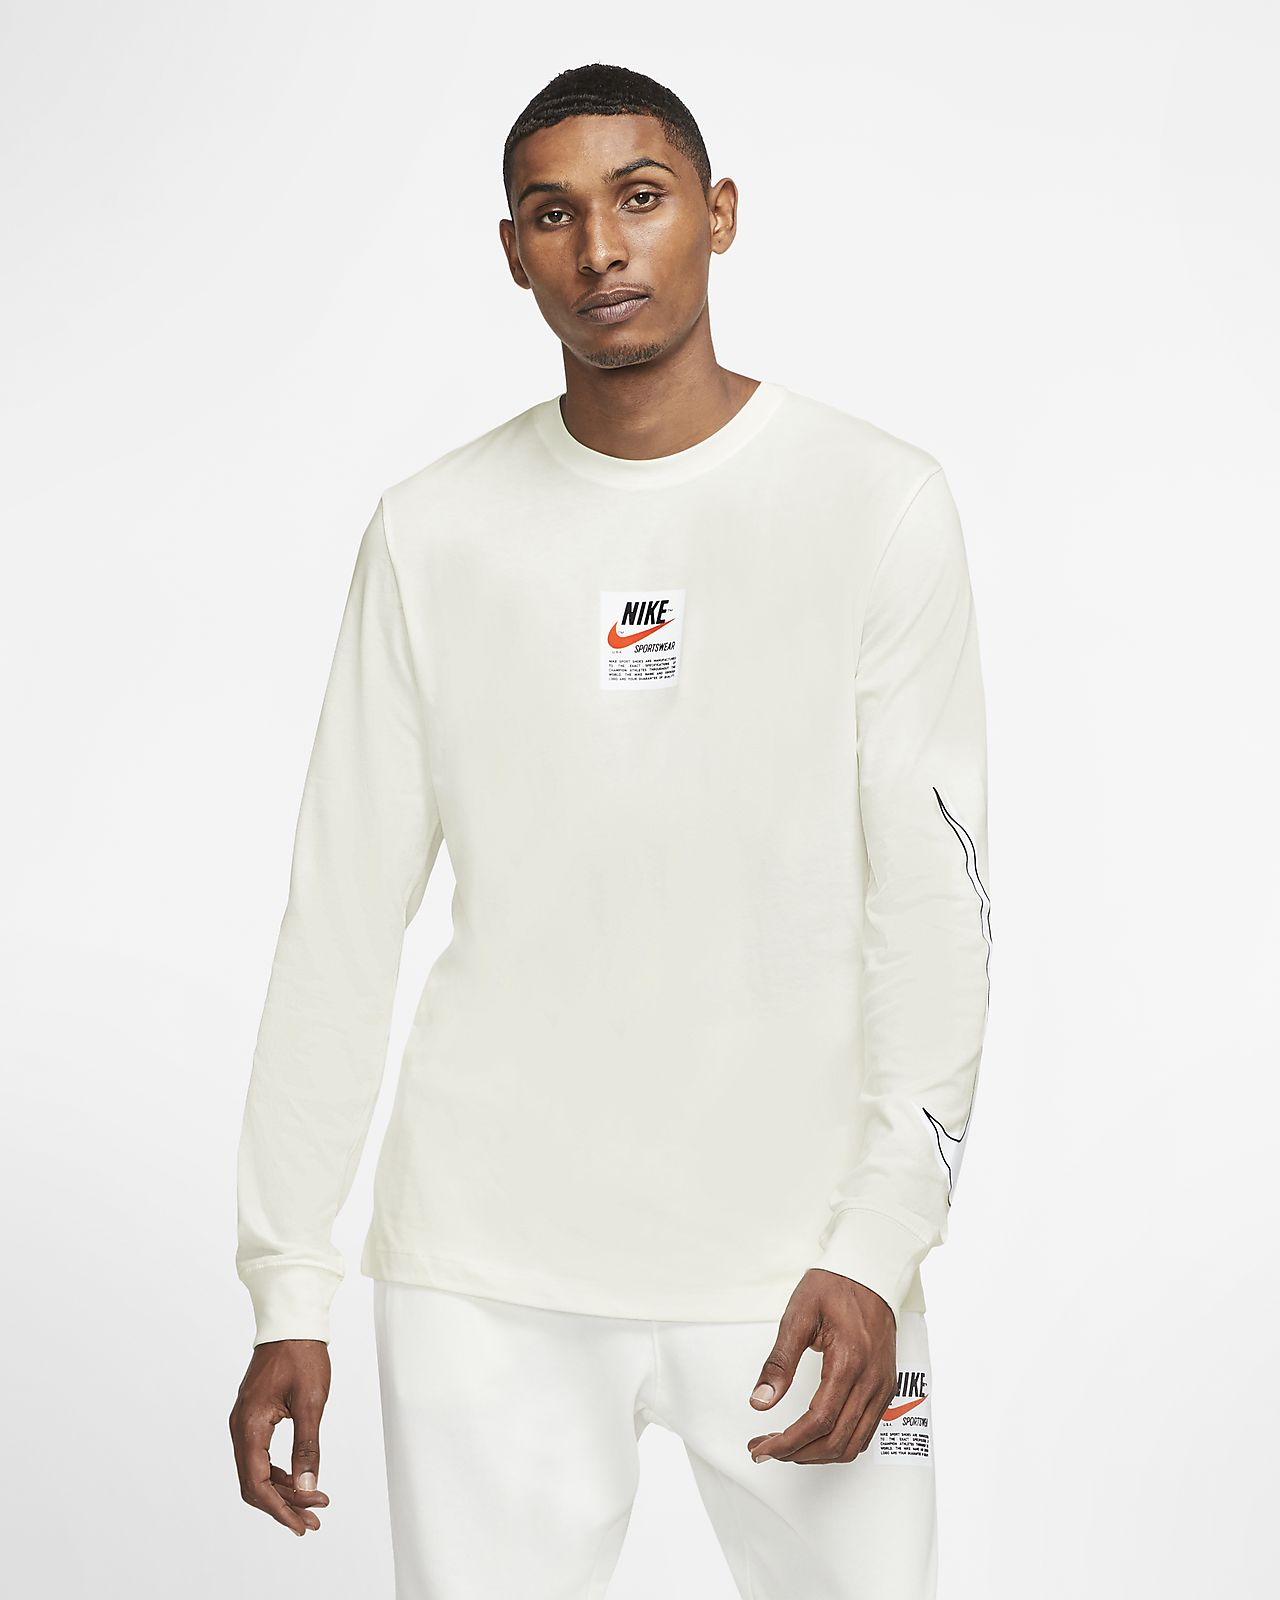 Nike Sportswear Men's Long-Sleeve Printed Top